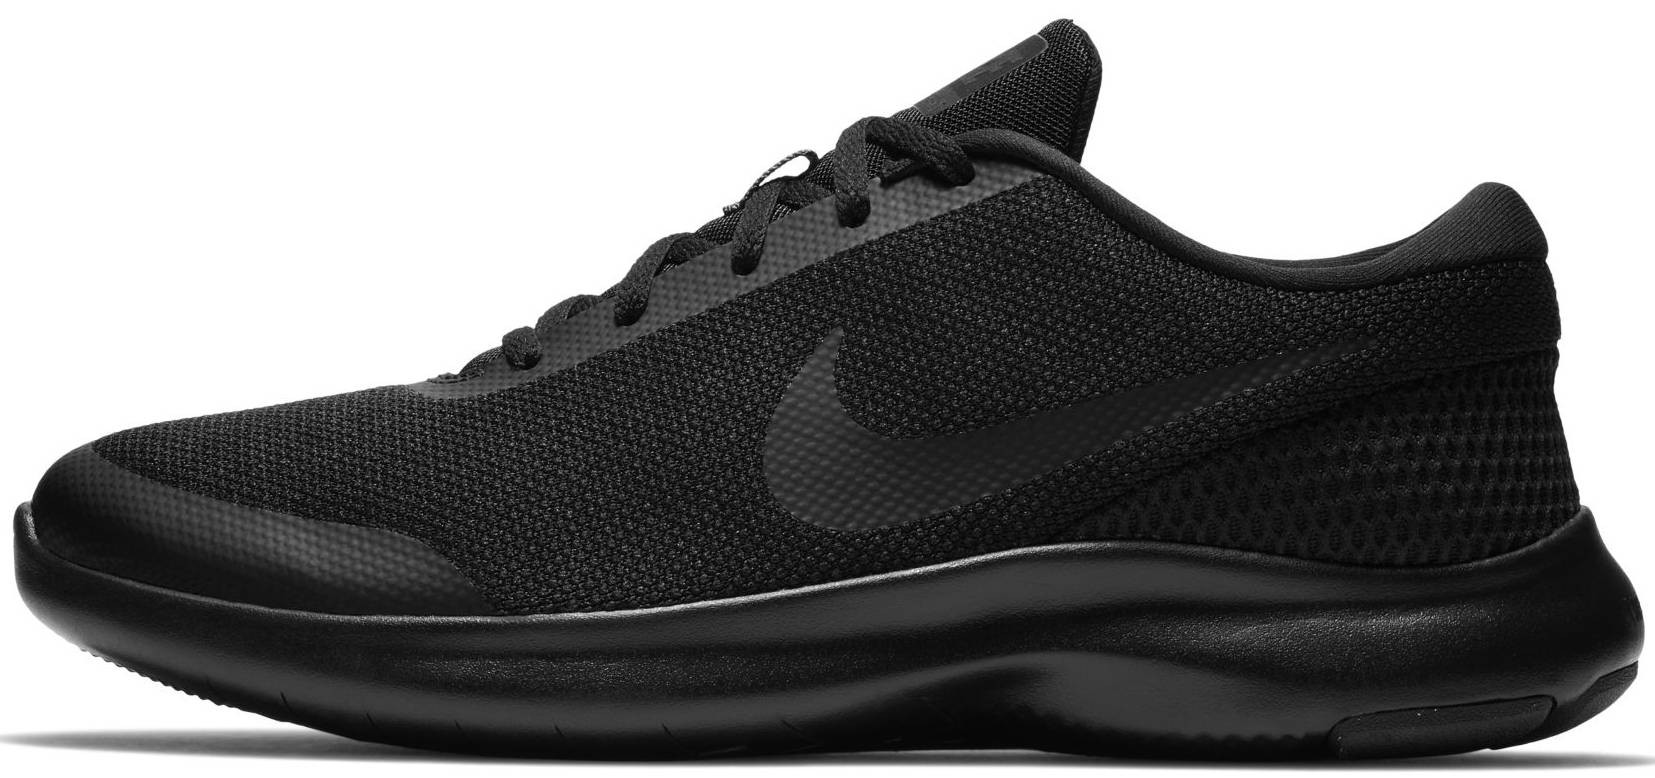 Wide Nike Running Shoes (10 Models in Stock) | RunRepeat